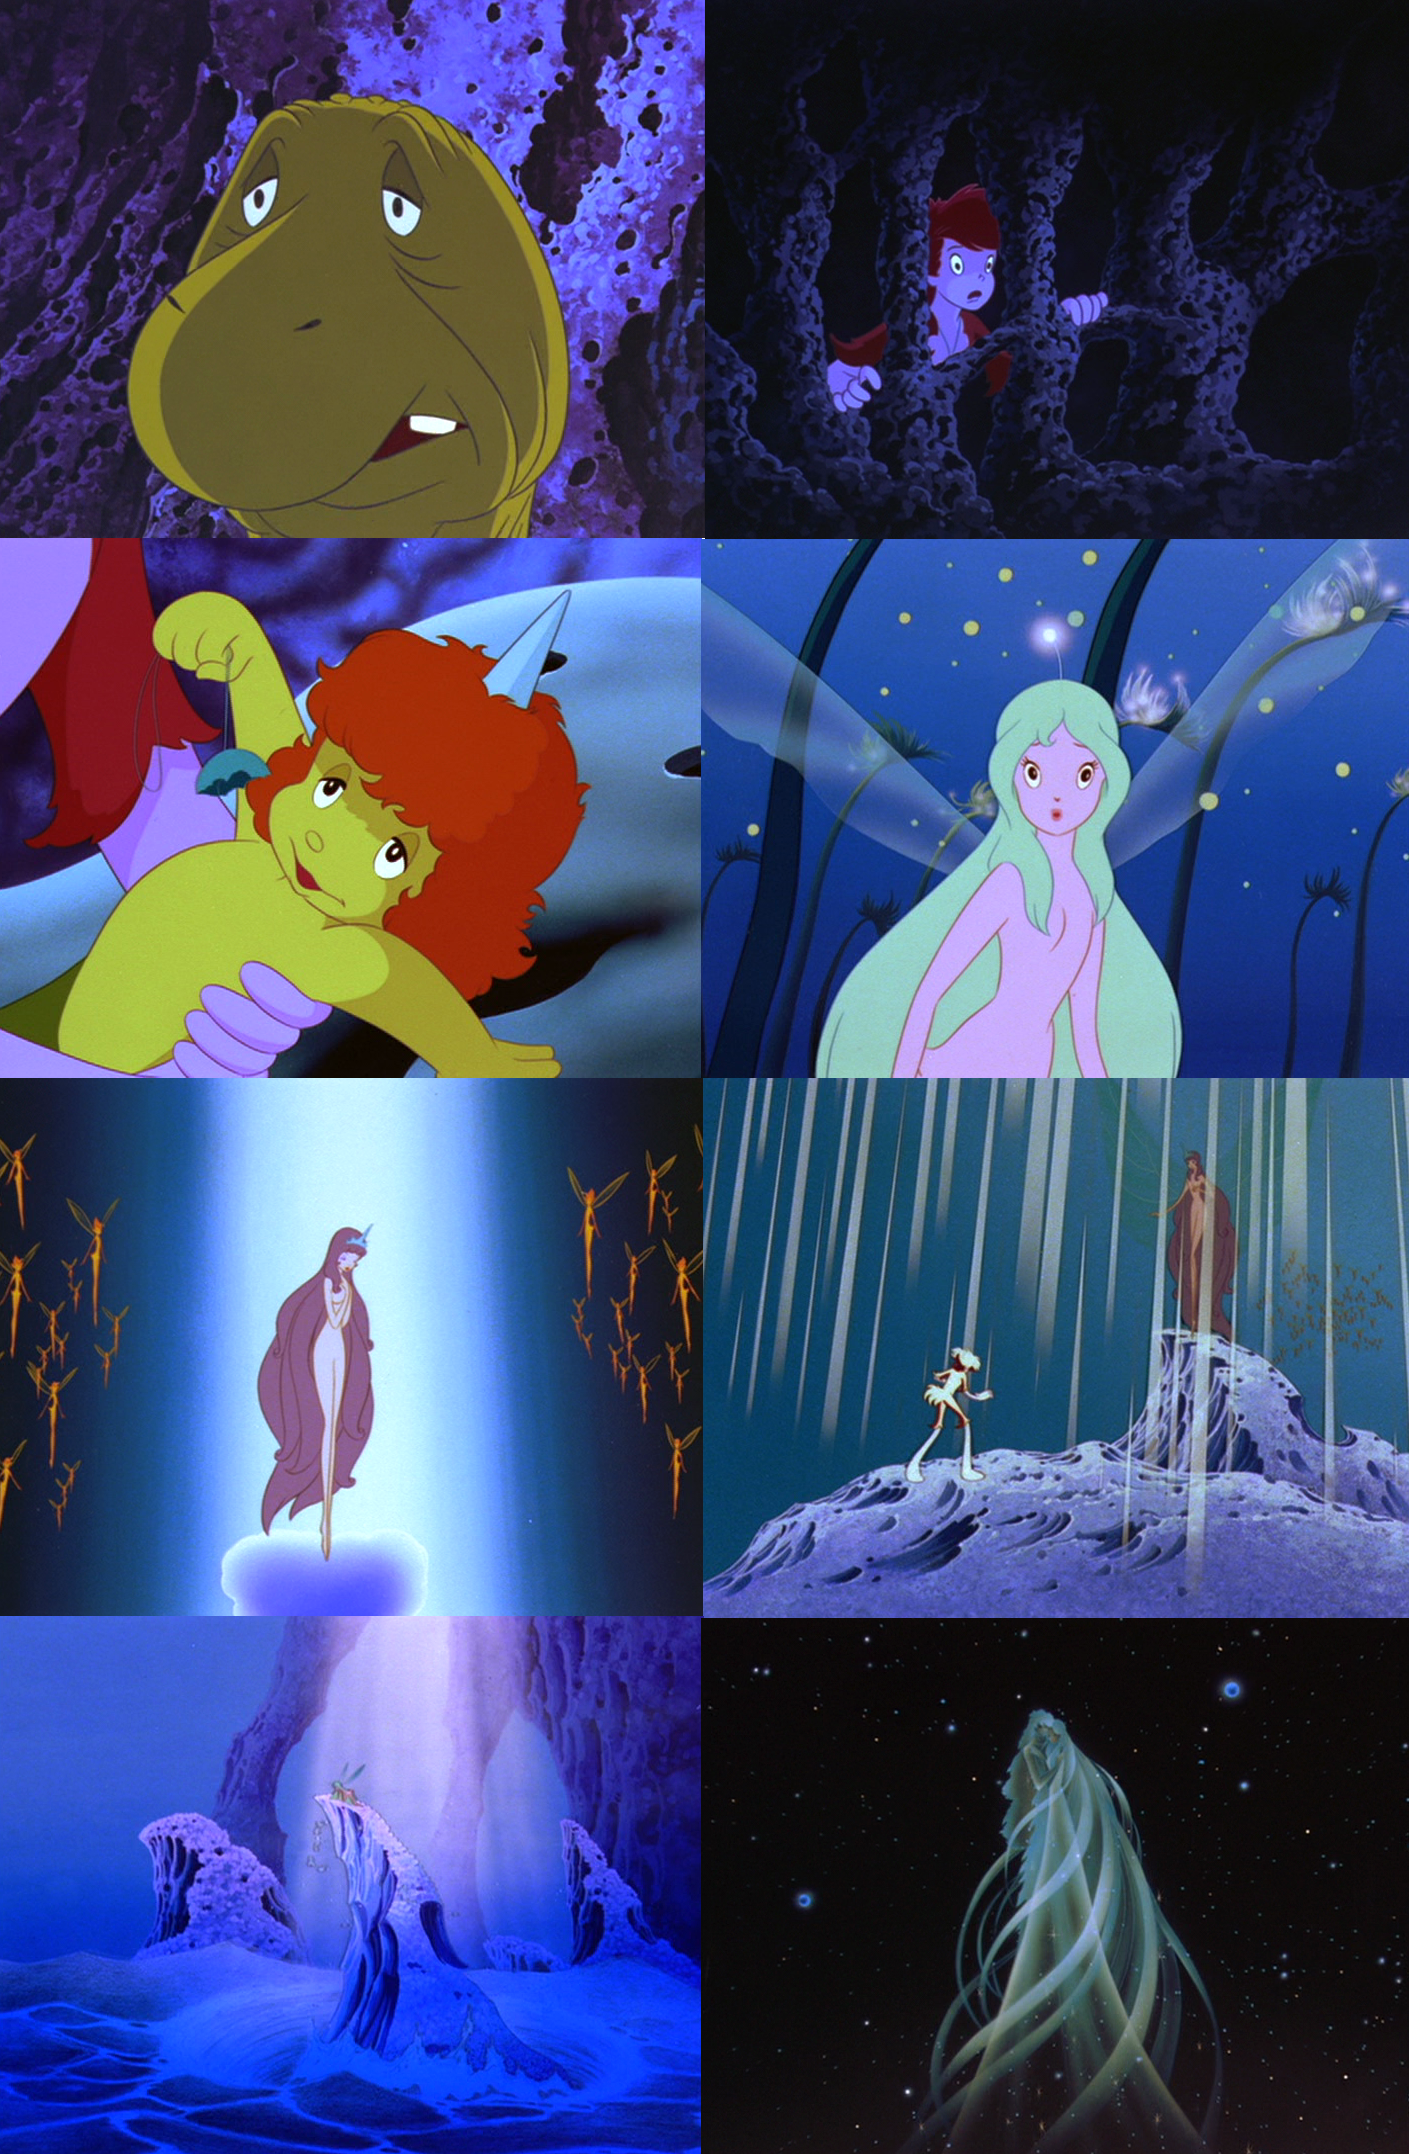 Pin by Ashley Riner on favorite fairy tale movie Anime